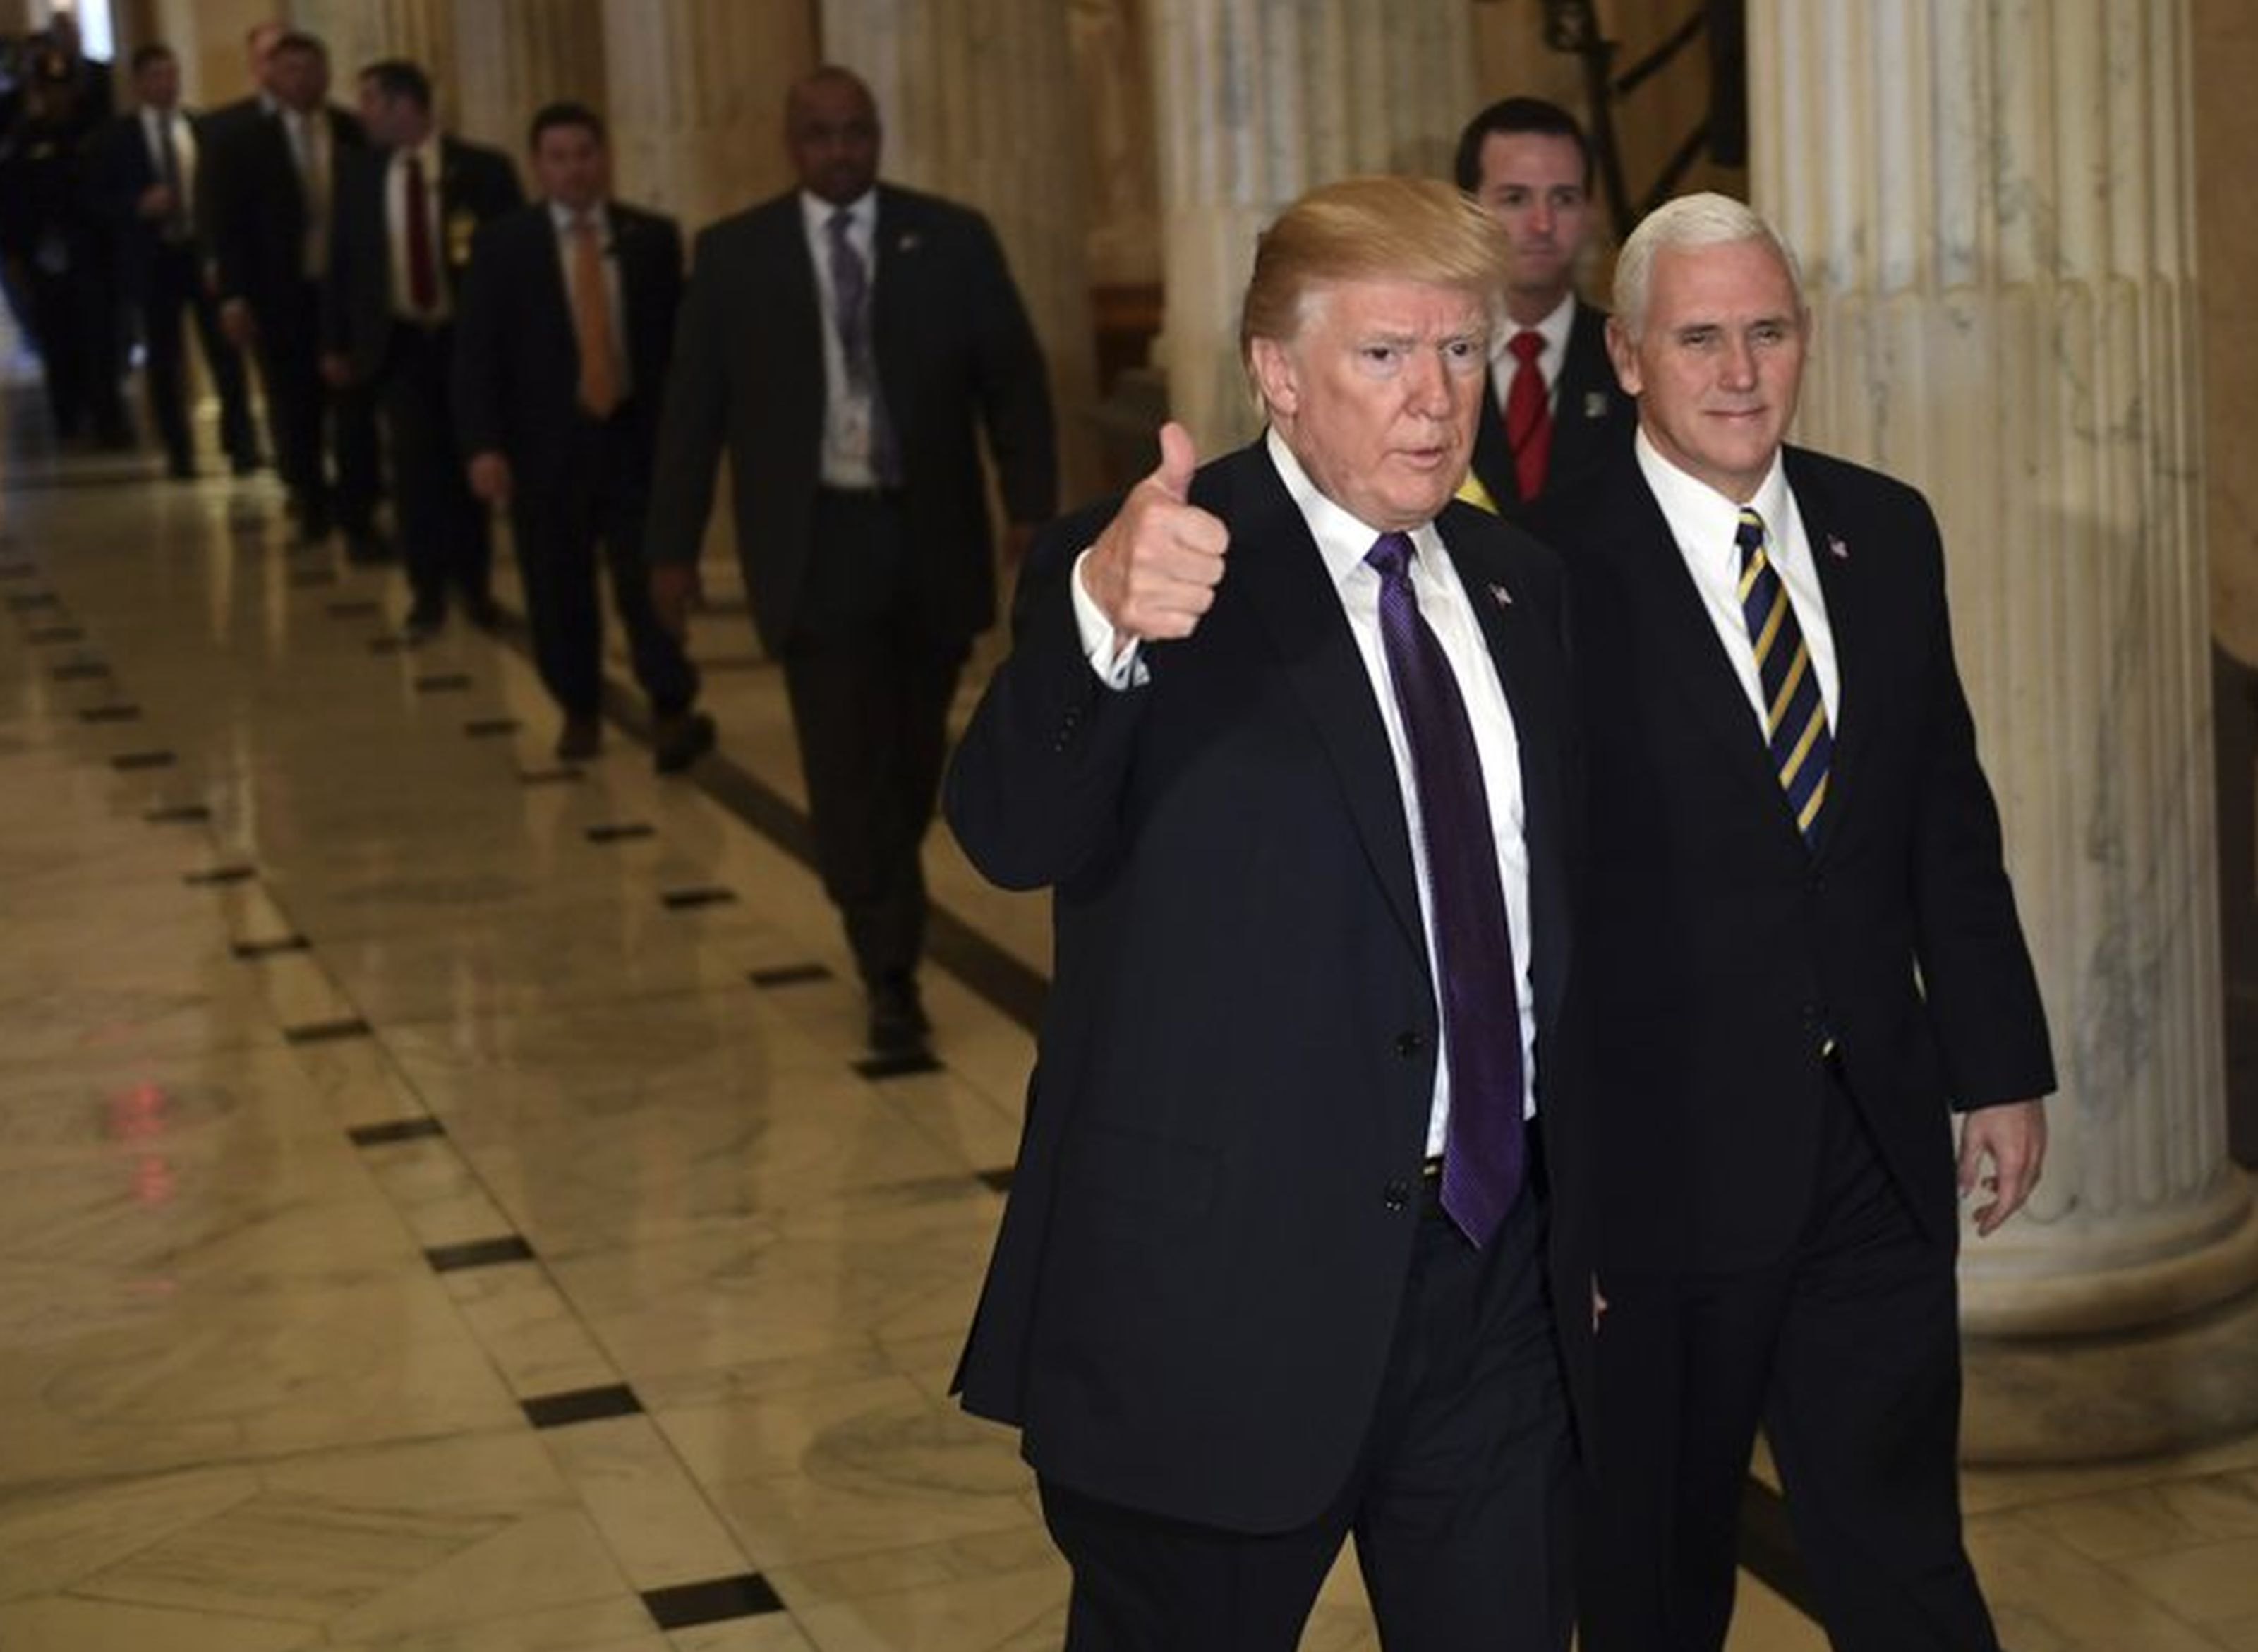 President Donald Trump gives a thumbs up as he walks with Vice President Mike Pence as he departs Capitol Hill in Washington, Thursday, Nov. 16, 2017. Trump urged House Republicans Thursday to approve a near $1.5 trillion tax overhaul as the party prepared to drive the measure through the House. Across the Capitol, Democrats pointed to new numbers showing the Senate version of the plan would boost taxes on lower and middle class Americans. AP NEWSWIRE/Susan Walsh